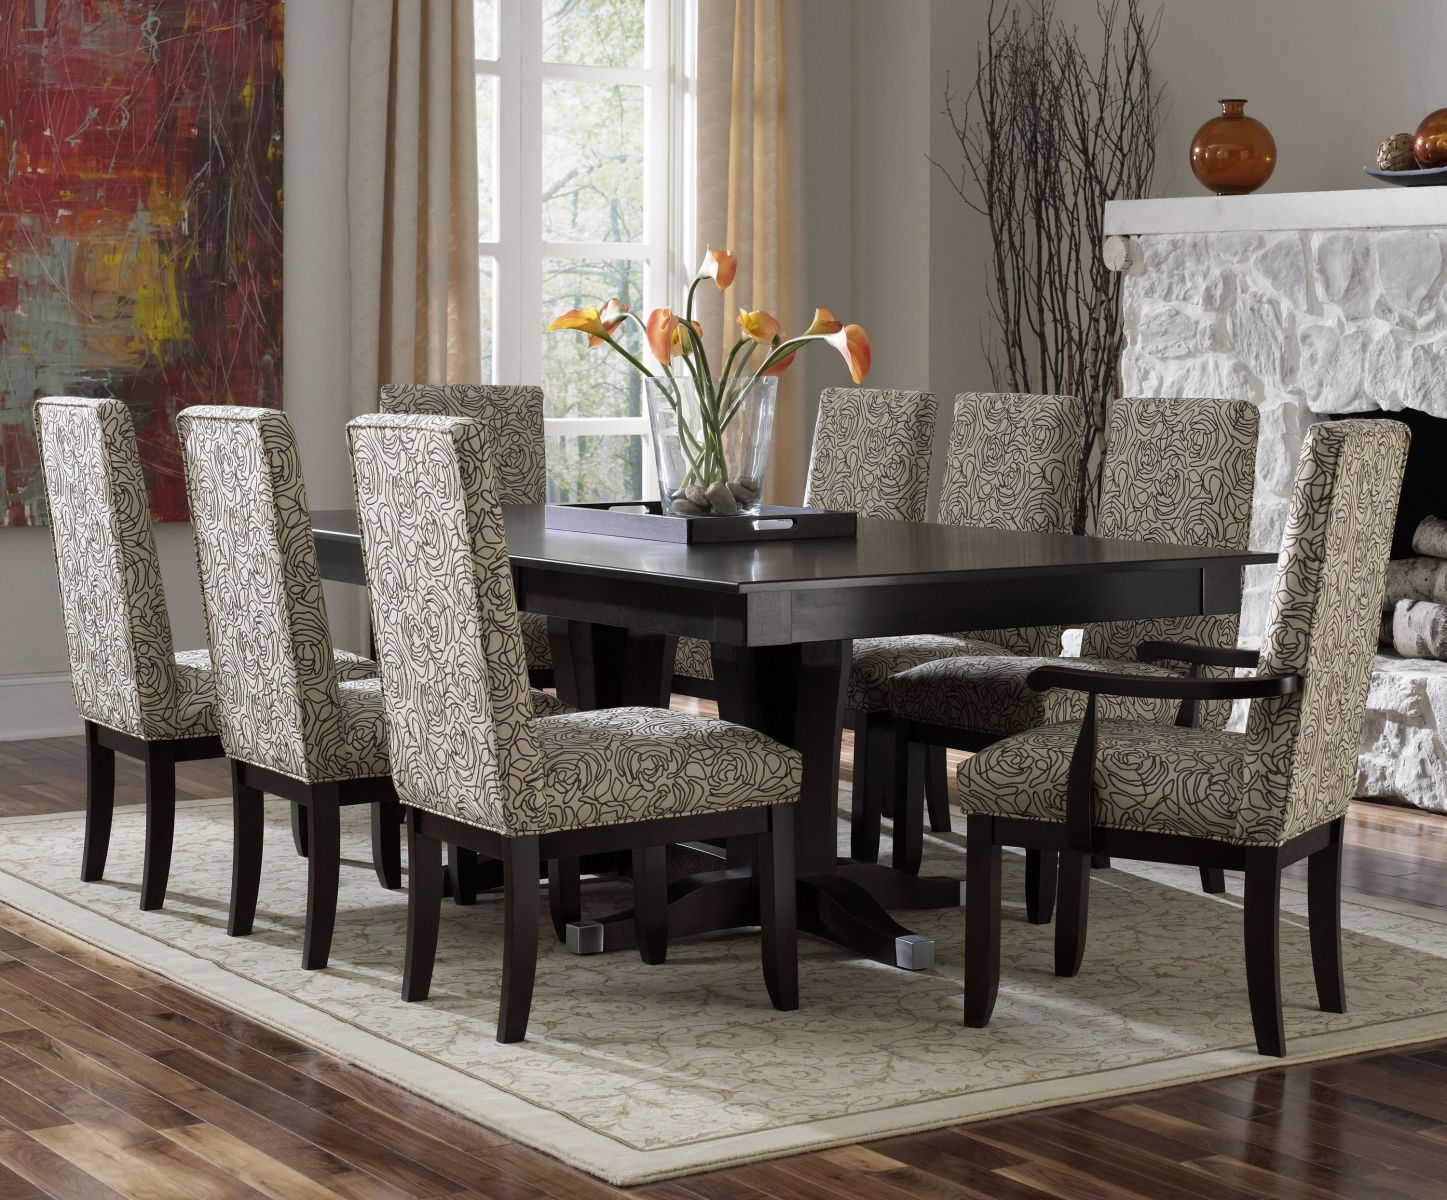 Décor for Formal Dining Room Designs | Contemporary dining room ...